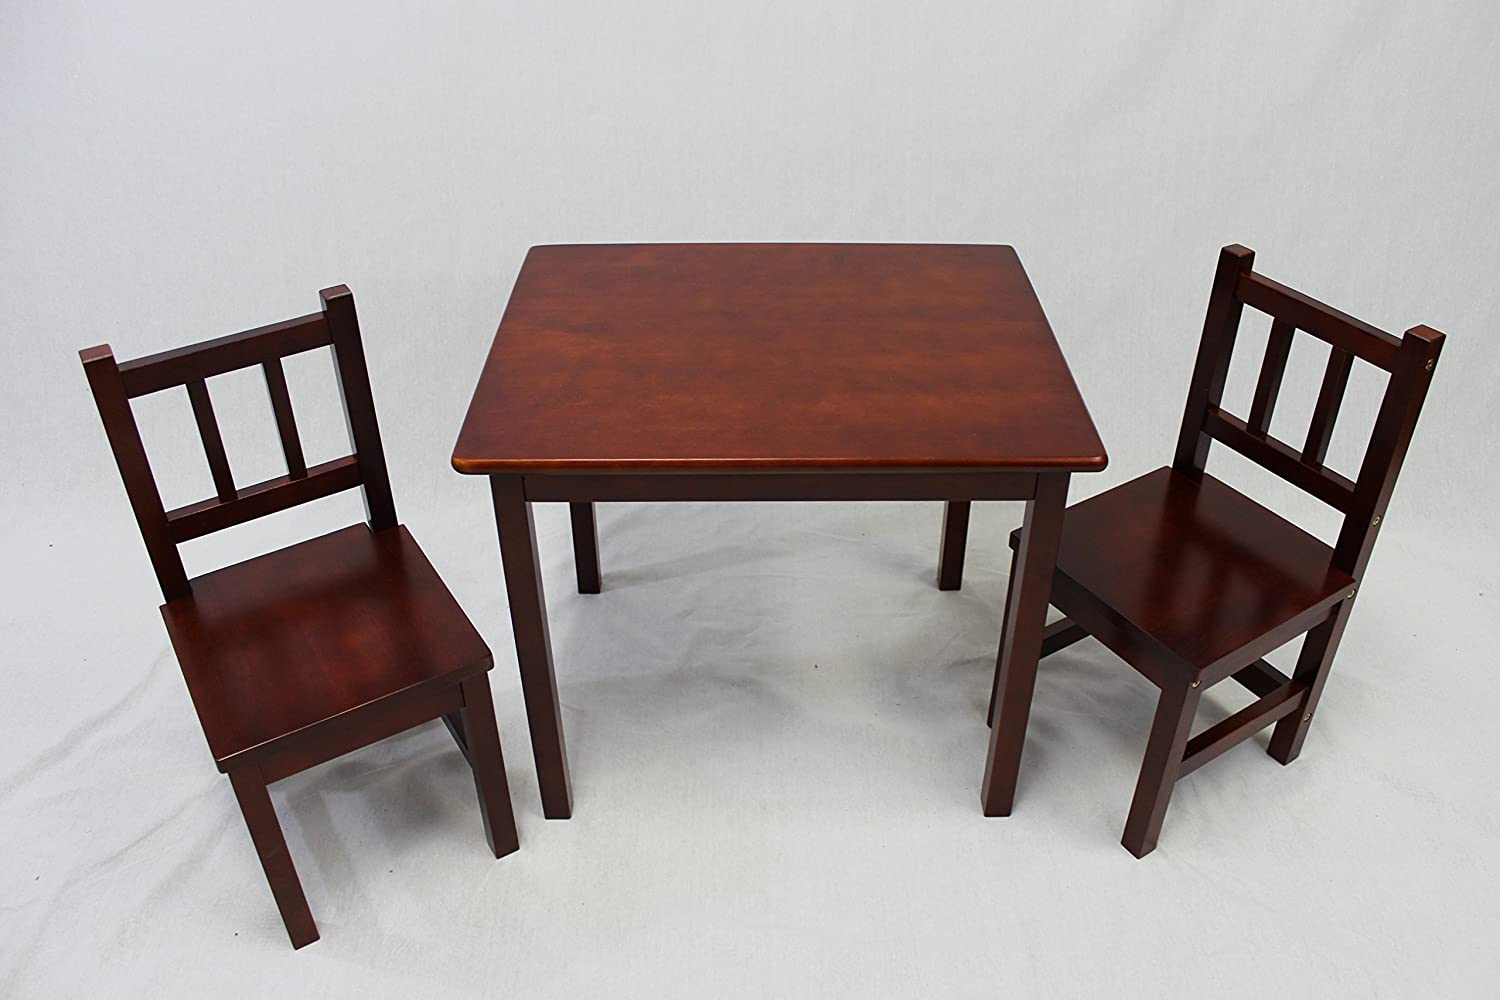 Kid table and chairs wood - Amazon Com Ehemco Kids Table And 2 Chairs Set Solid Hard Wood Cherry Kitchen Dining